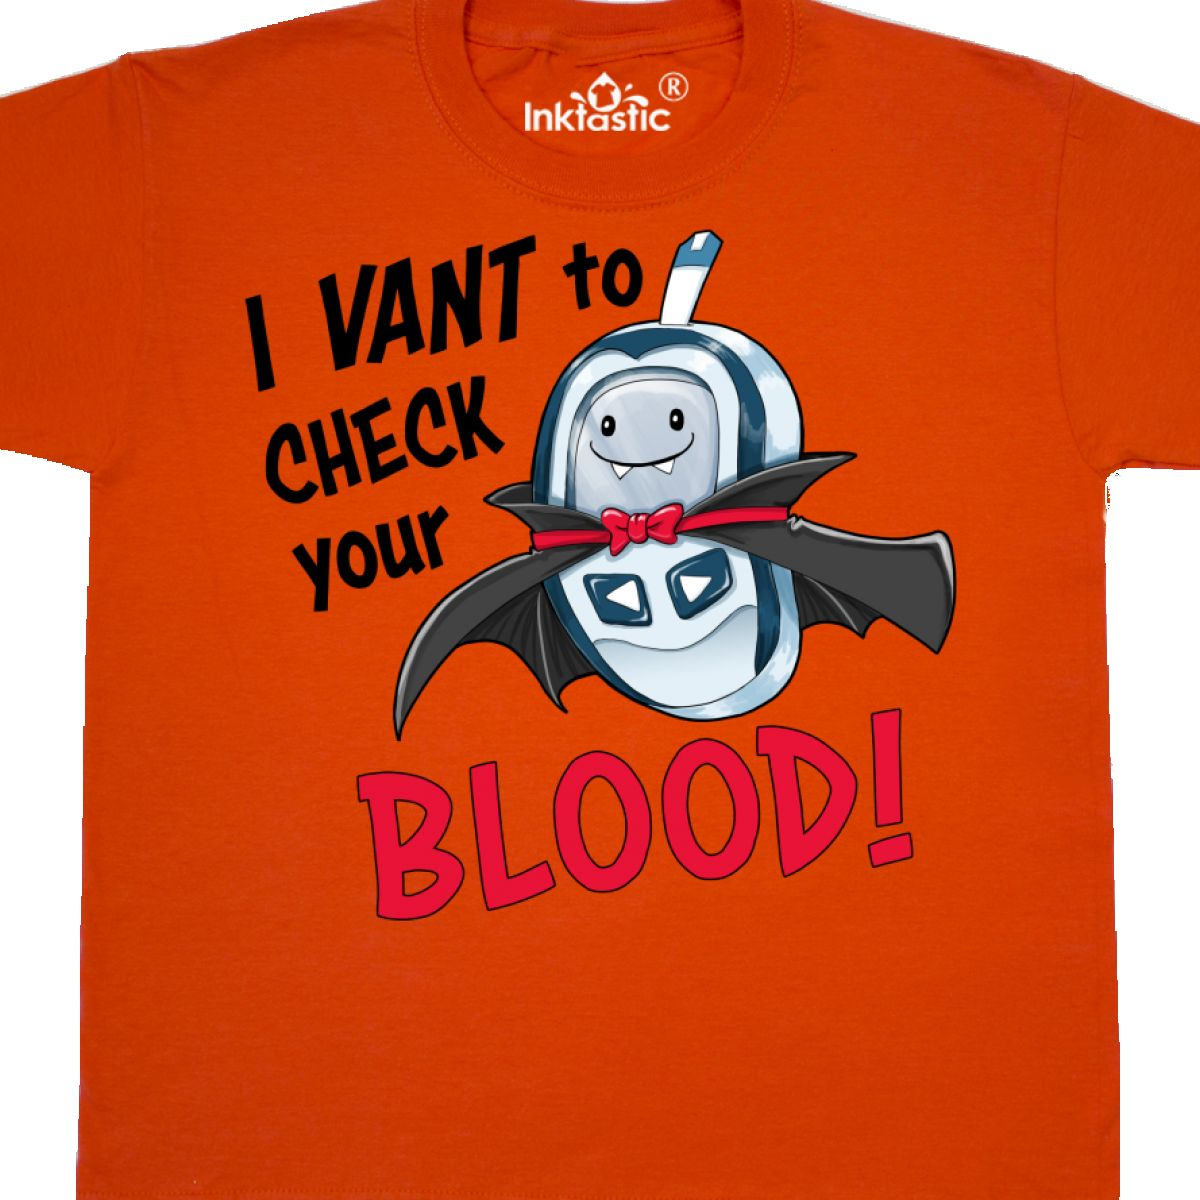 Youth T-Shirt Awareness Diabetes Halloween Inktastic I Vant To Check Your Blood